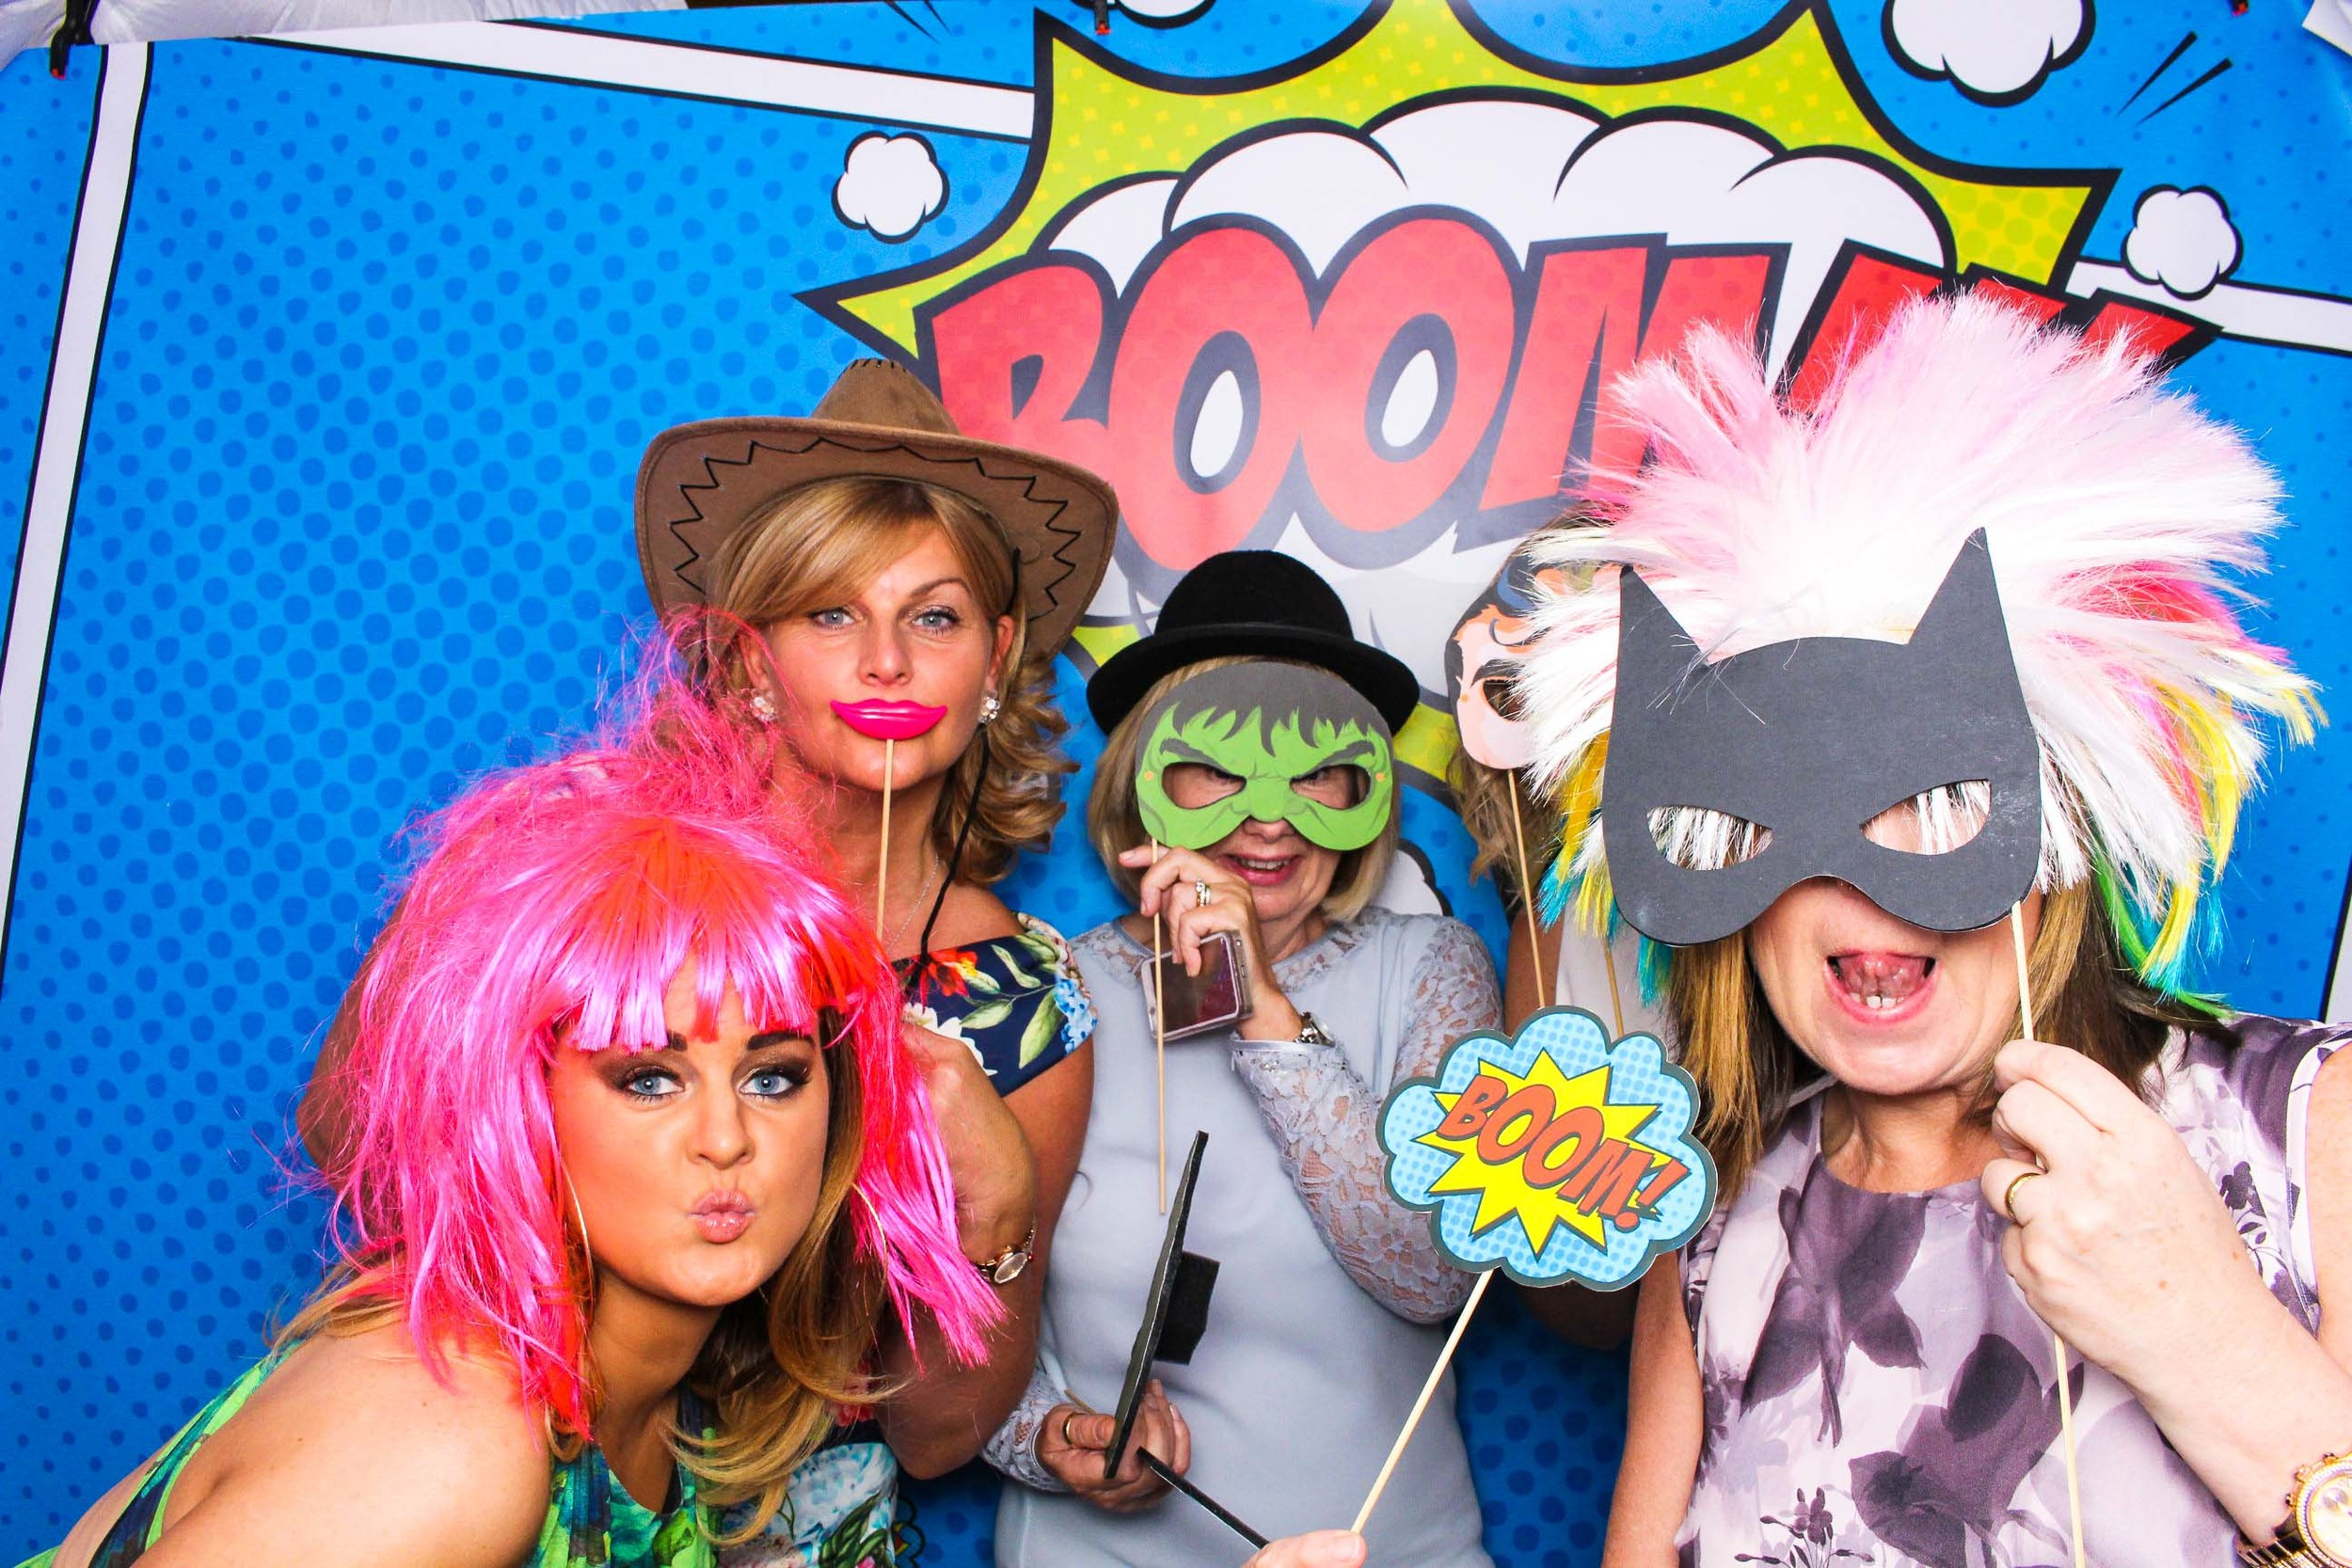 Fotoauto Photo Booth Hire - Shop Direct-69.jpg